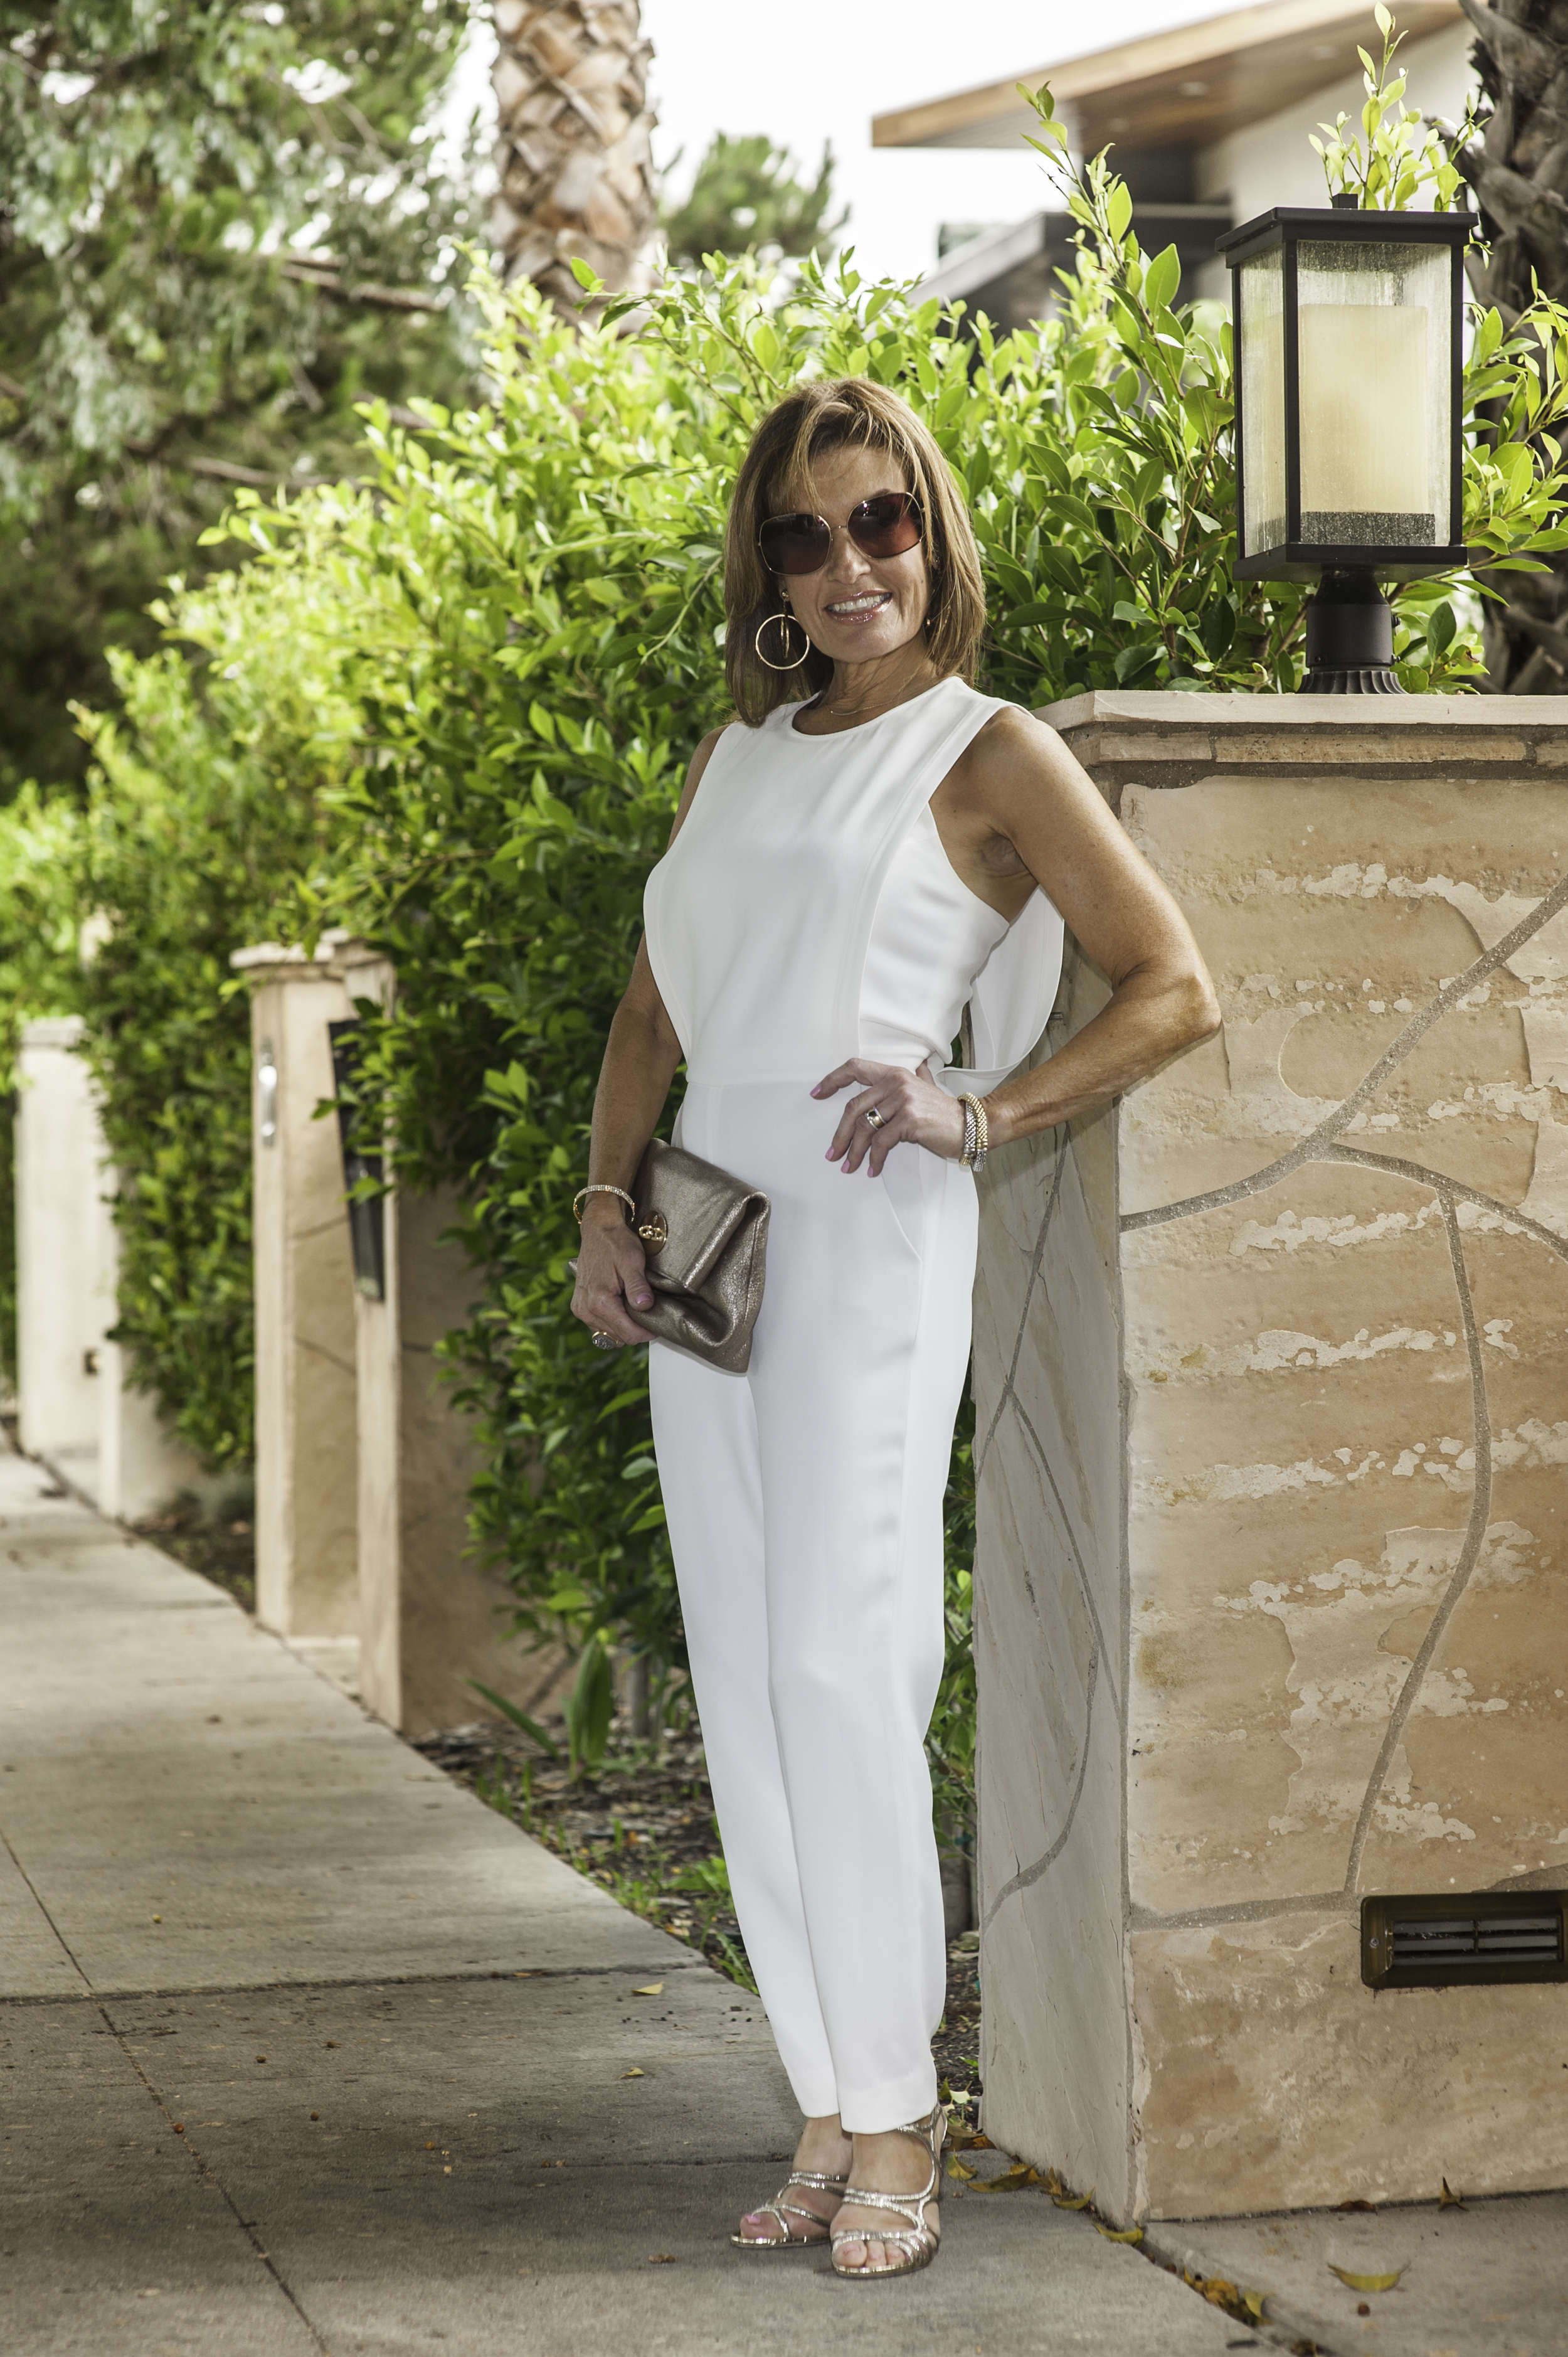 Theory Jumpsuit , similar for less here , Mulberry Clutch, Jimmy Choo Sandals, similar  here .